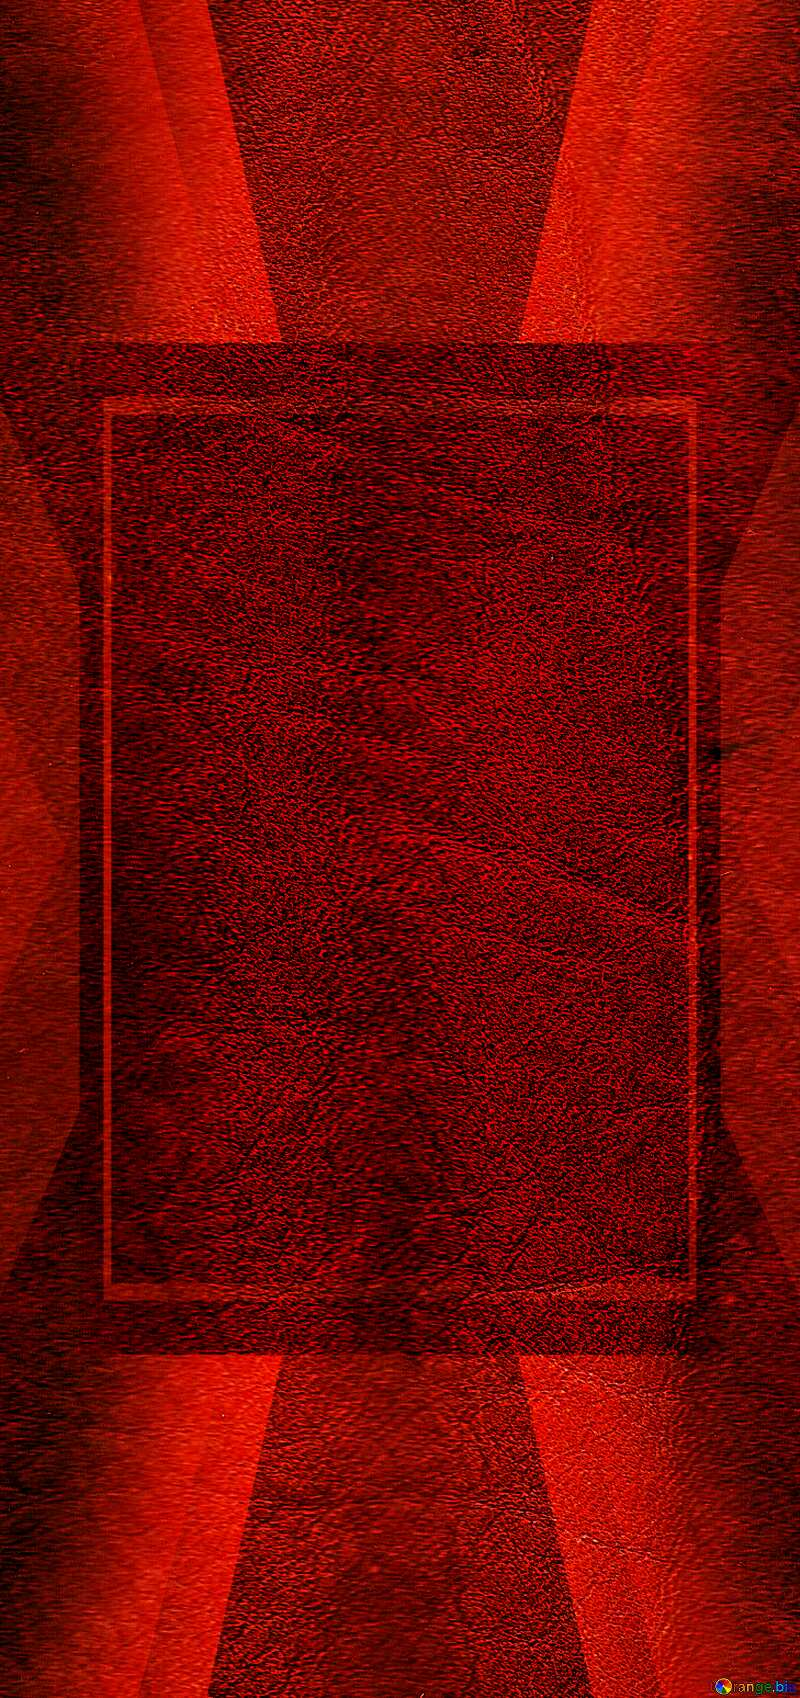 Old leather red texture powerpoint website infographic template banner layout design responsive brochure business №46552